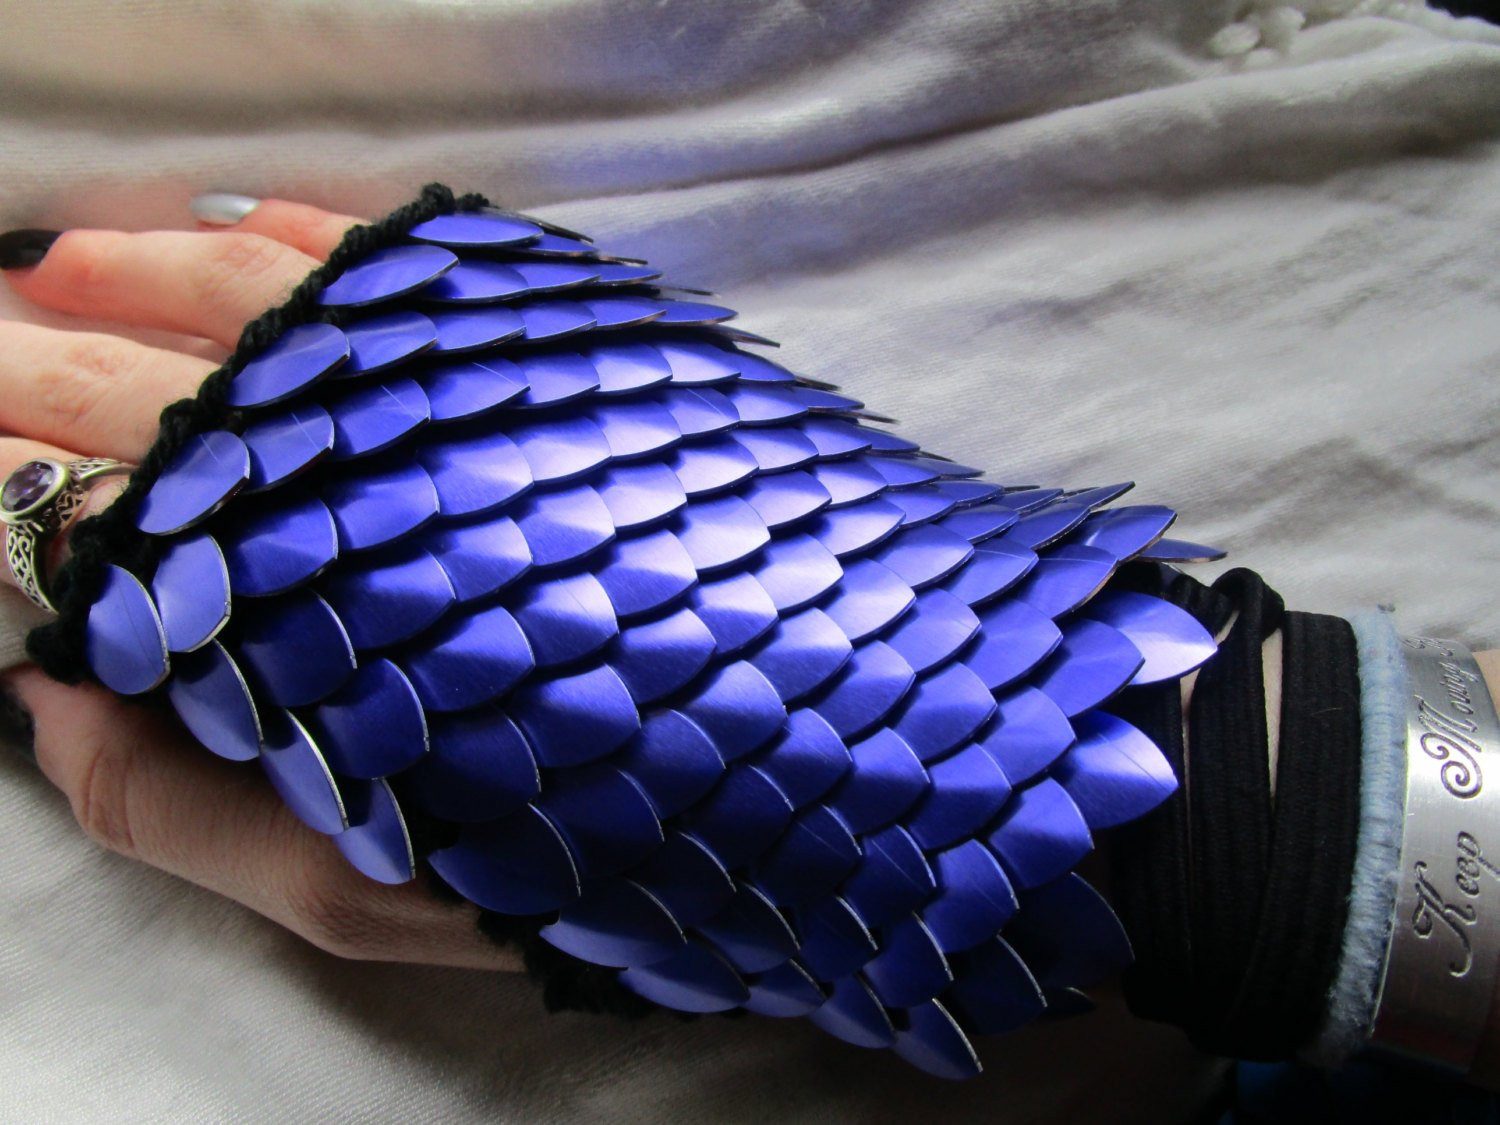 Dragon Scale Gloves Inspirational Amethyst Dragon Scale Gloves Dragon Scale Gauntlets Knitted Of Amazing 46 Pictures Dragon Scale Gloves